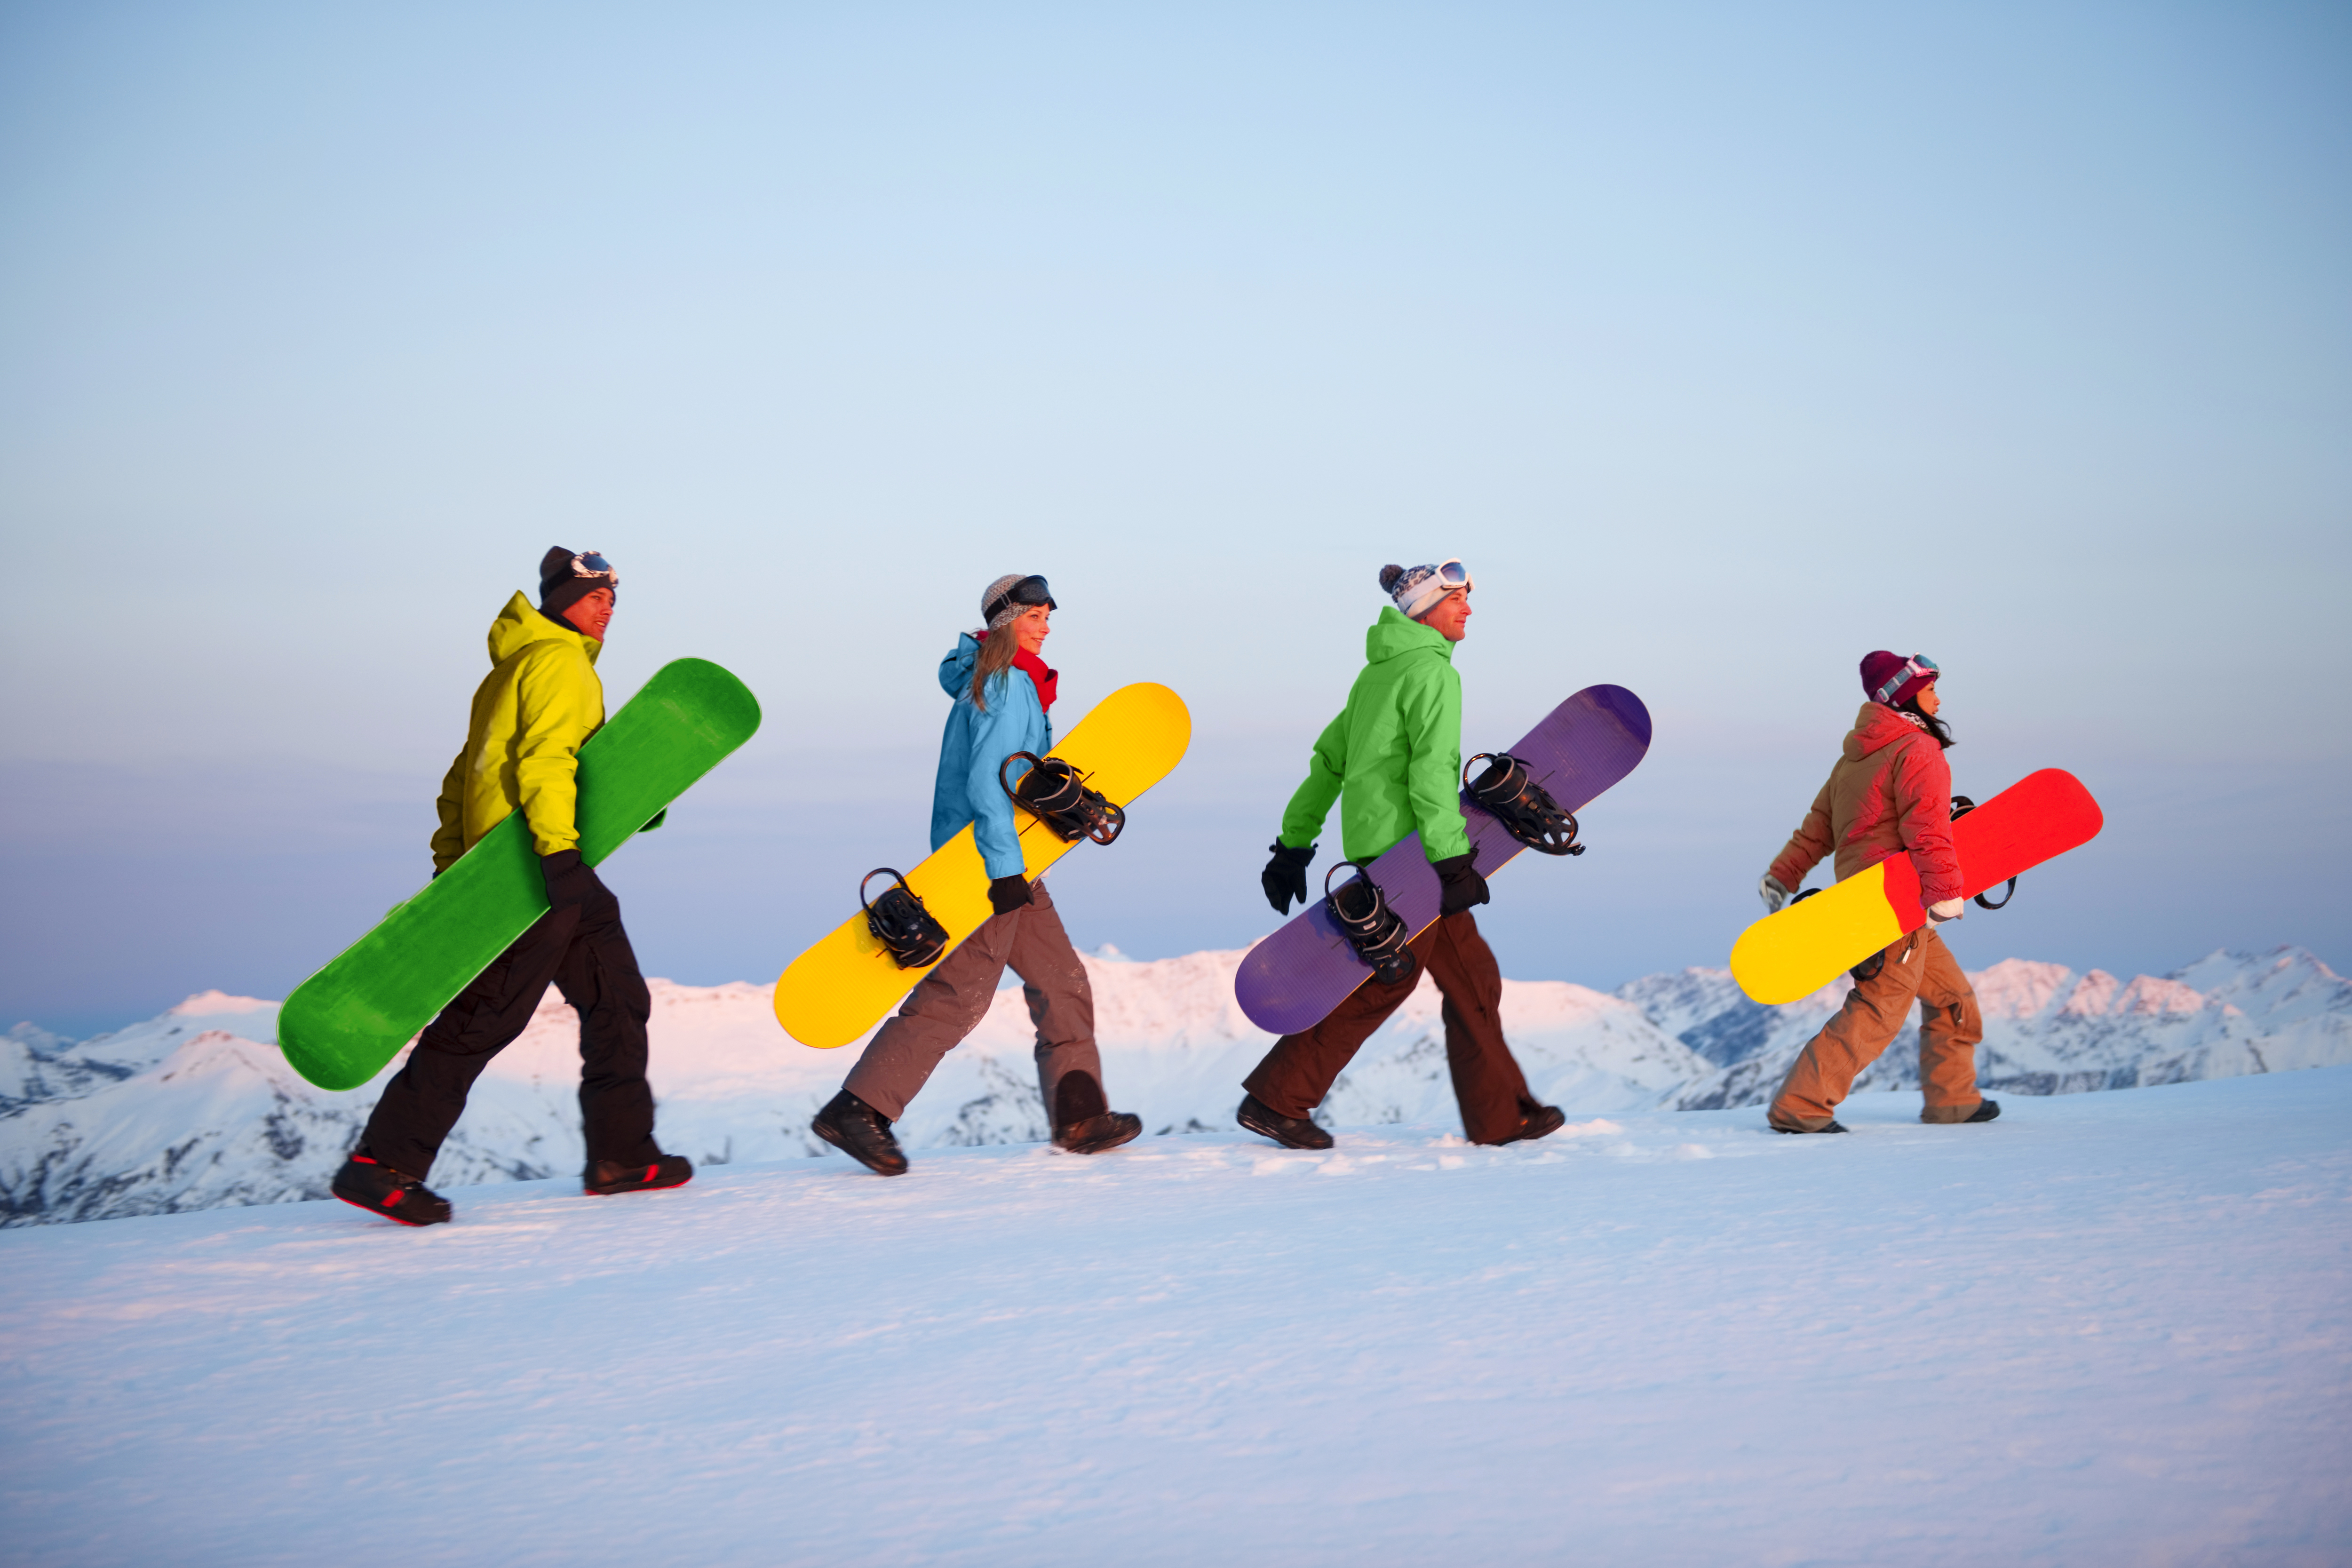 bigstock-Group-of-snowboarders-on-top-o-89061053.jpg